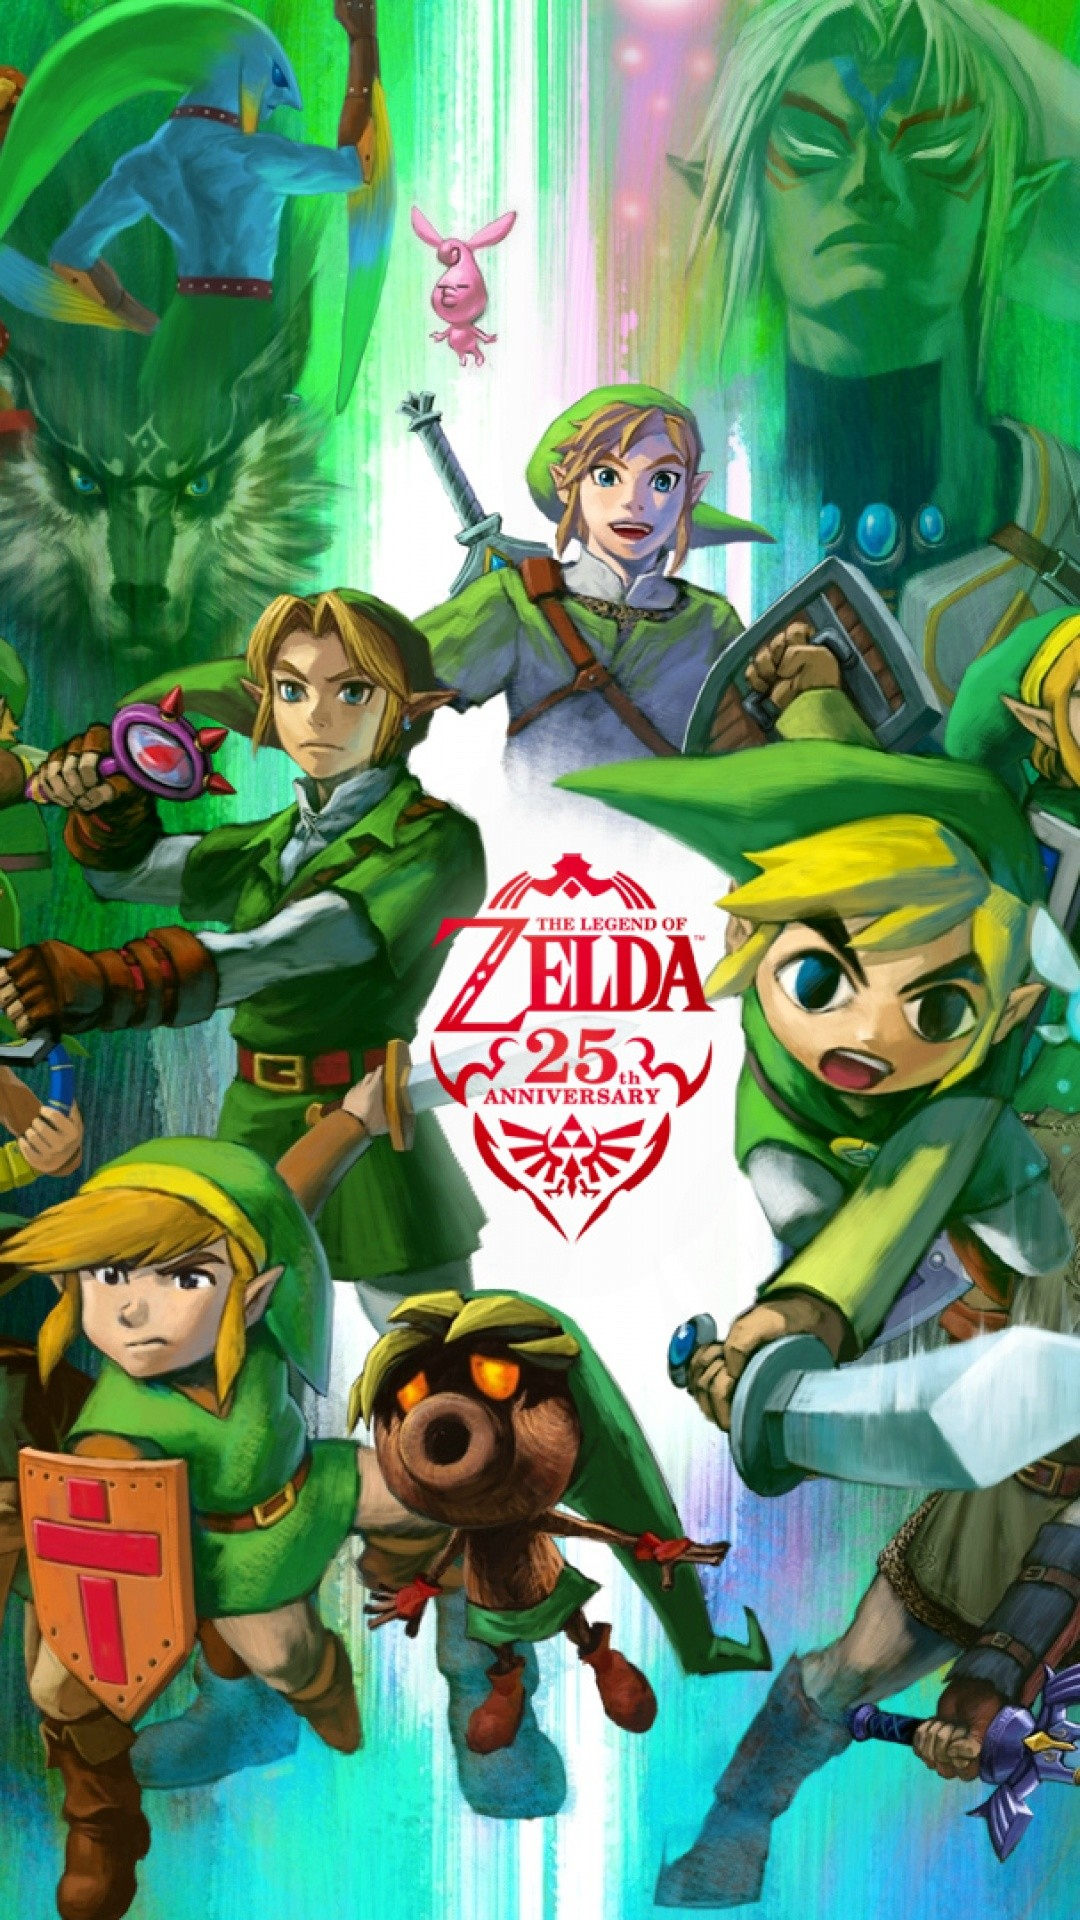 … The Legend of Zelda Wallpapers for iPhone | iTito Games Blog …